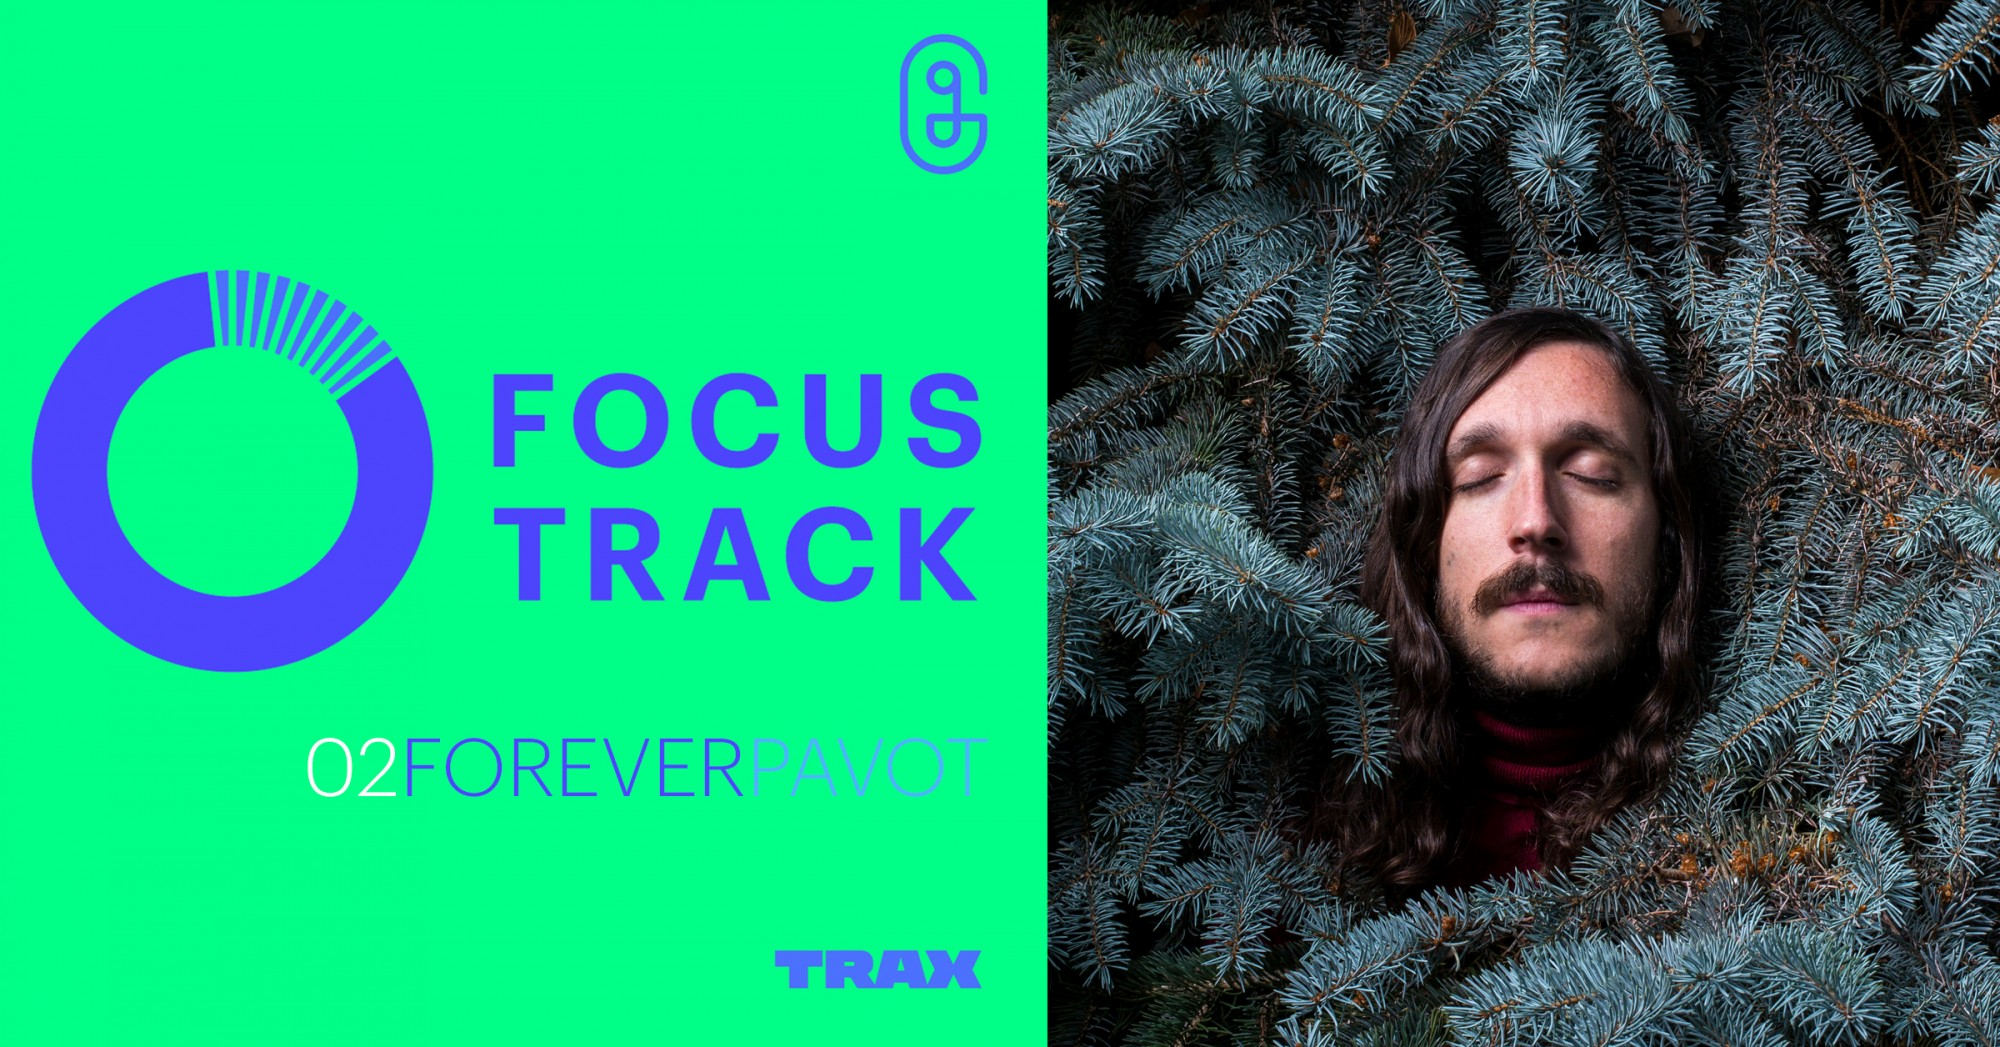 Focus Track : Forever Pavot pour toujours